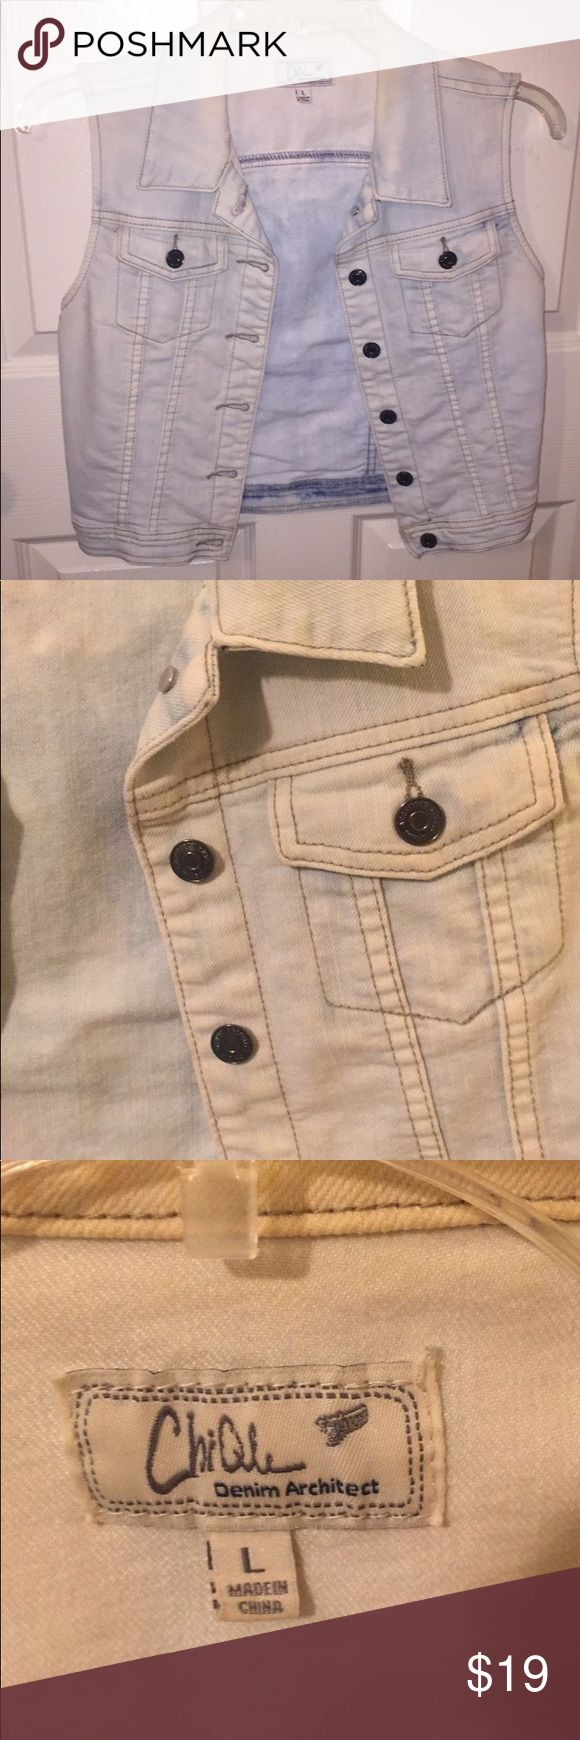 Sleeveless jean jacket Light wash denim jacket. Goes great with a top or sweater, and super comfy! Can fit a medium-large. Great condition! Jackets & Coats Jean Jackets